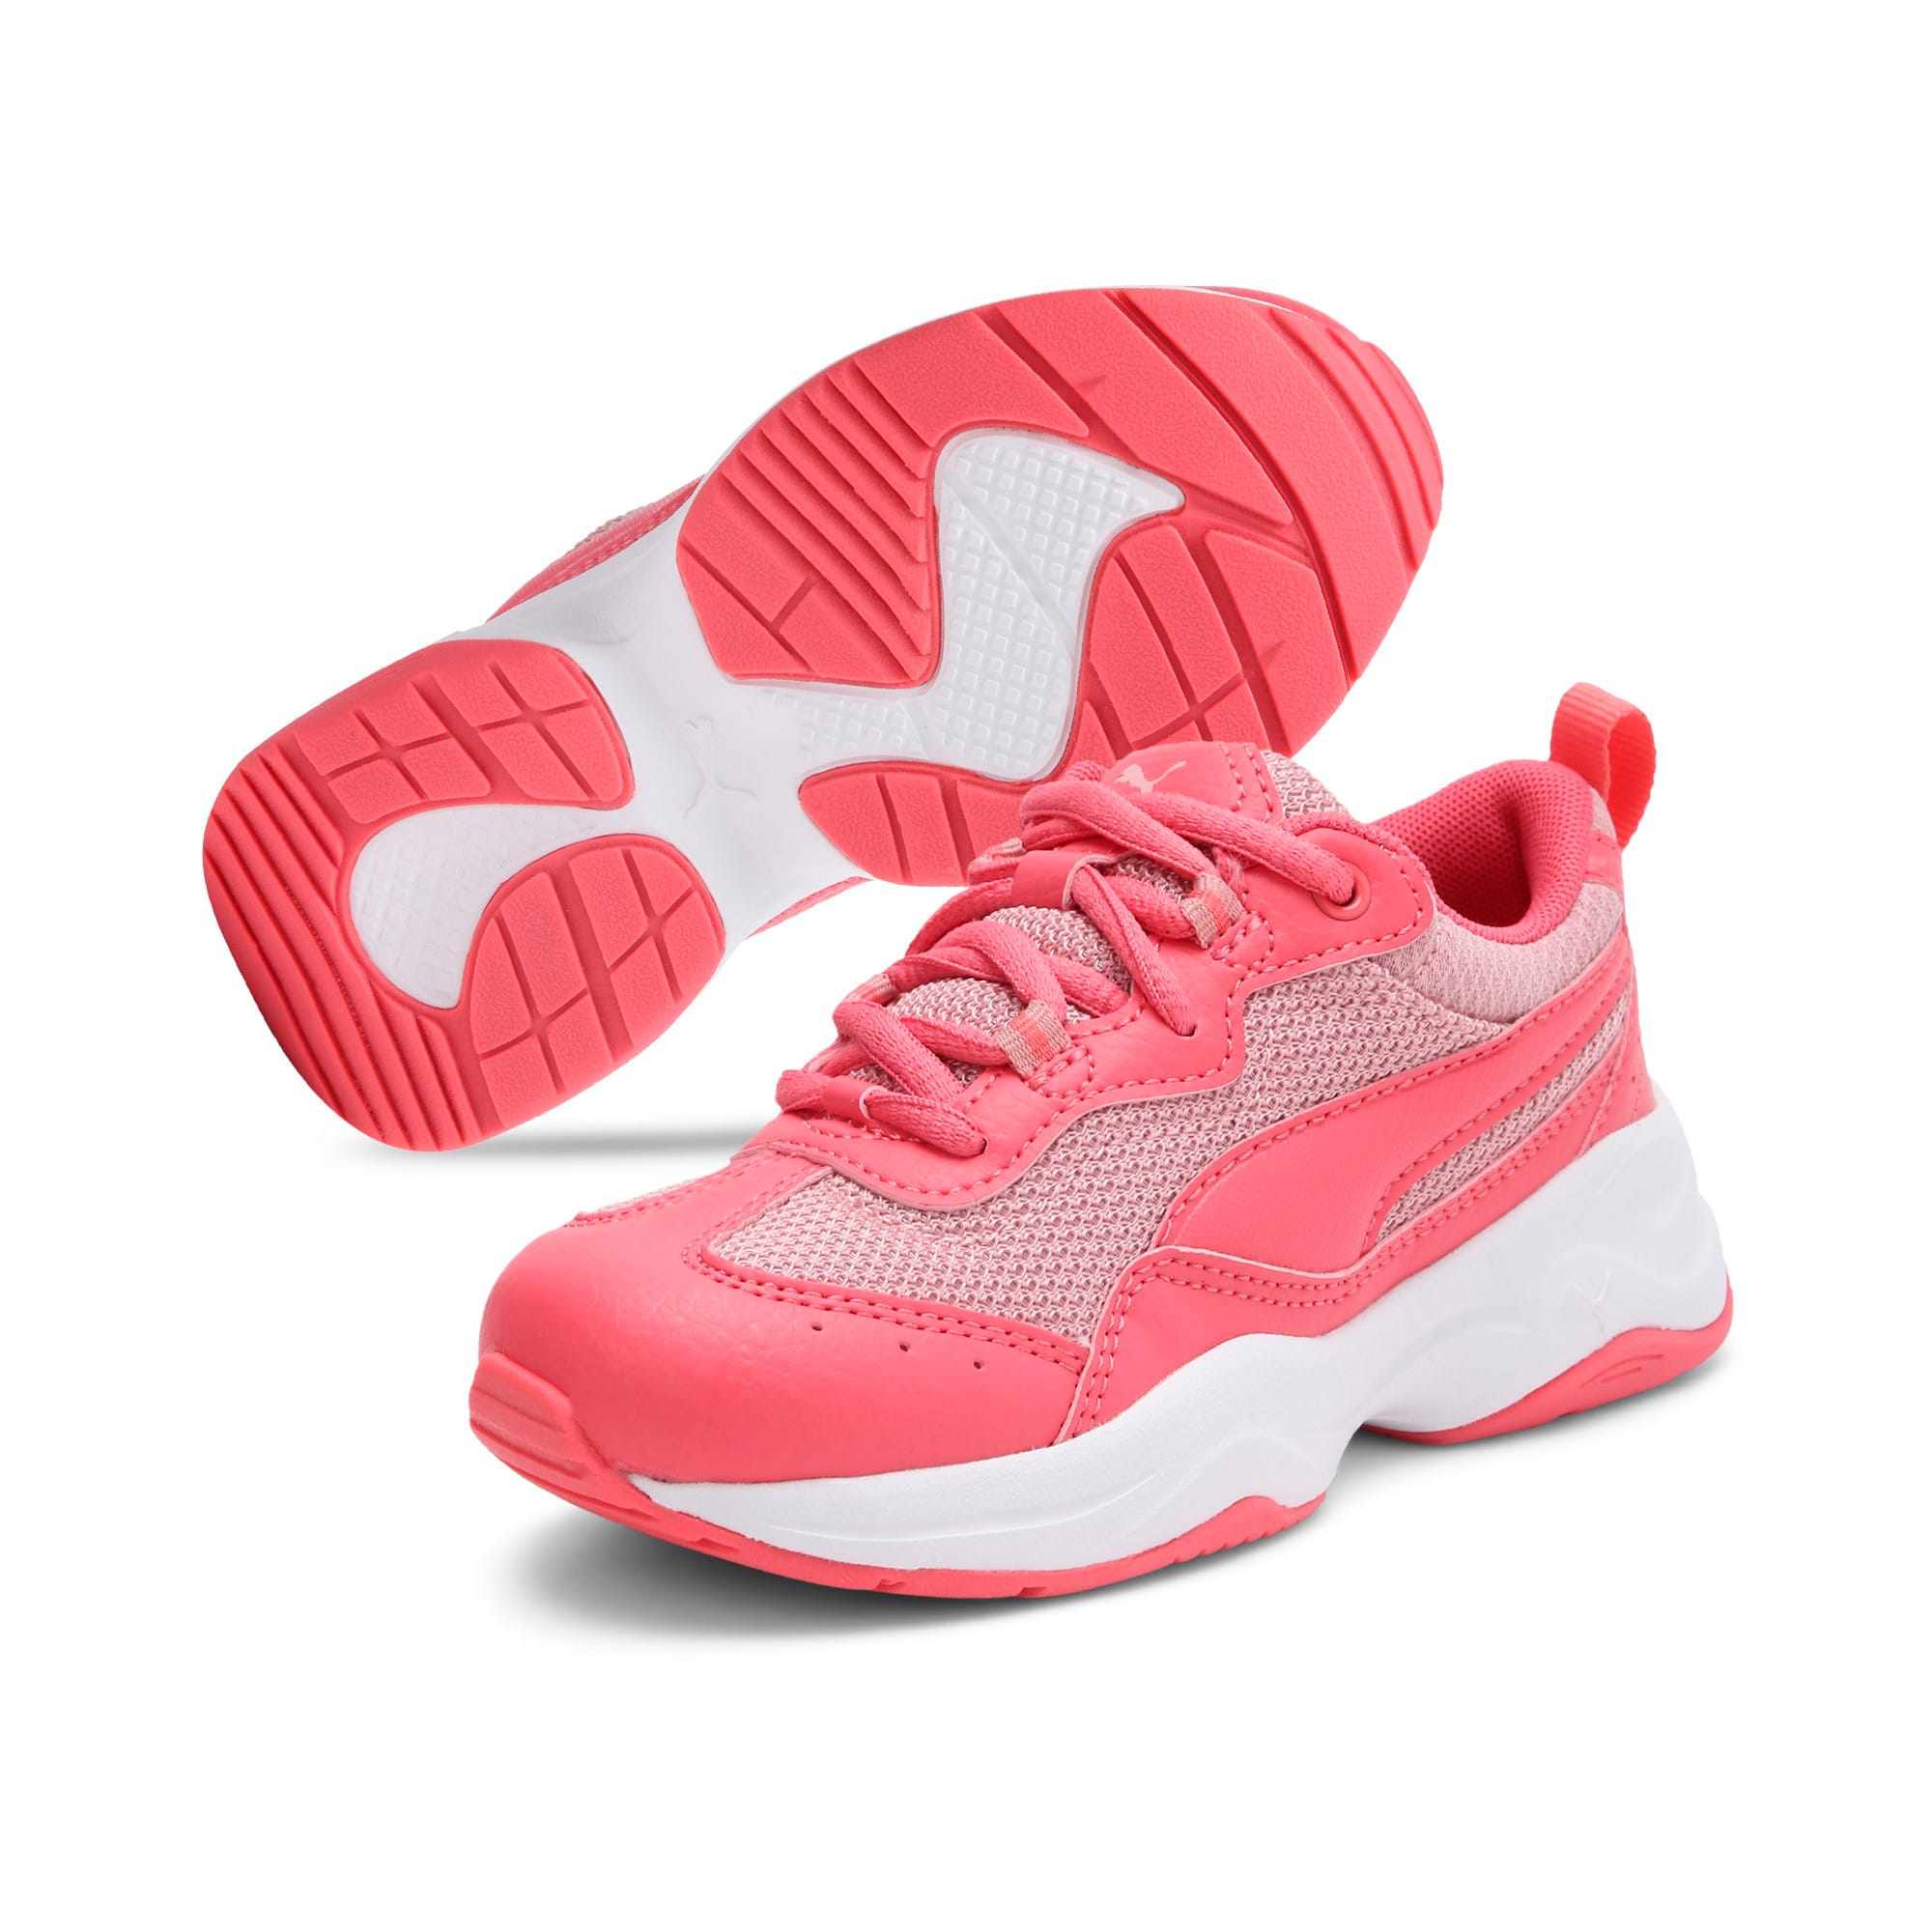 Thumbnail 2 of Cilia Kids' Trainers, Calypso Coral-B Rose-White, medium-IND